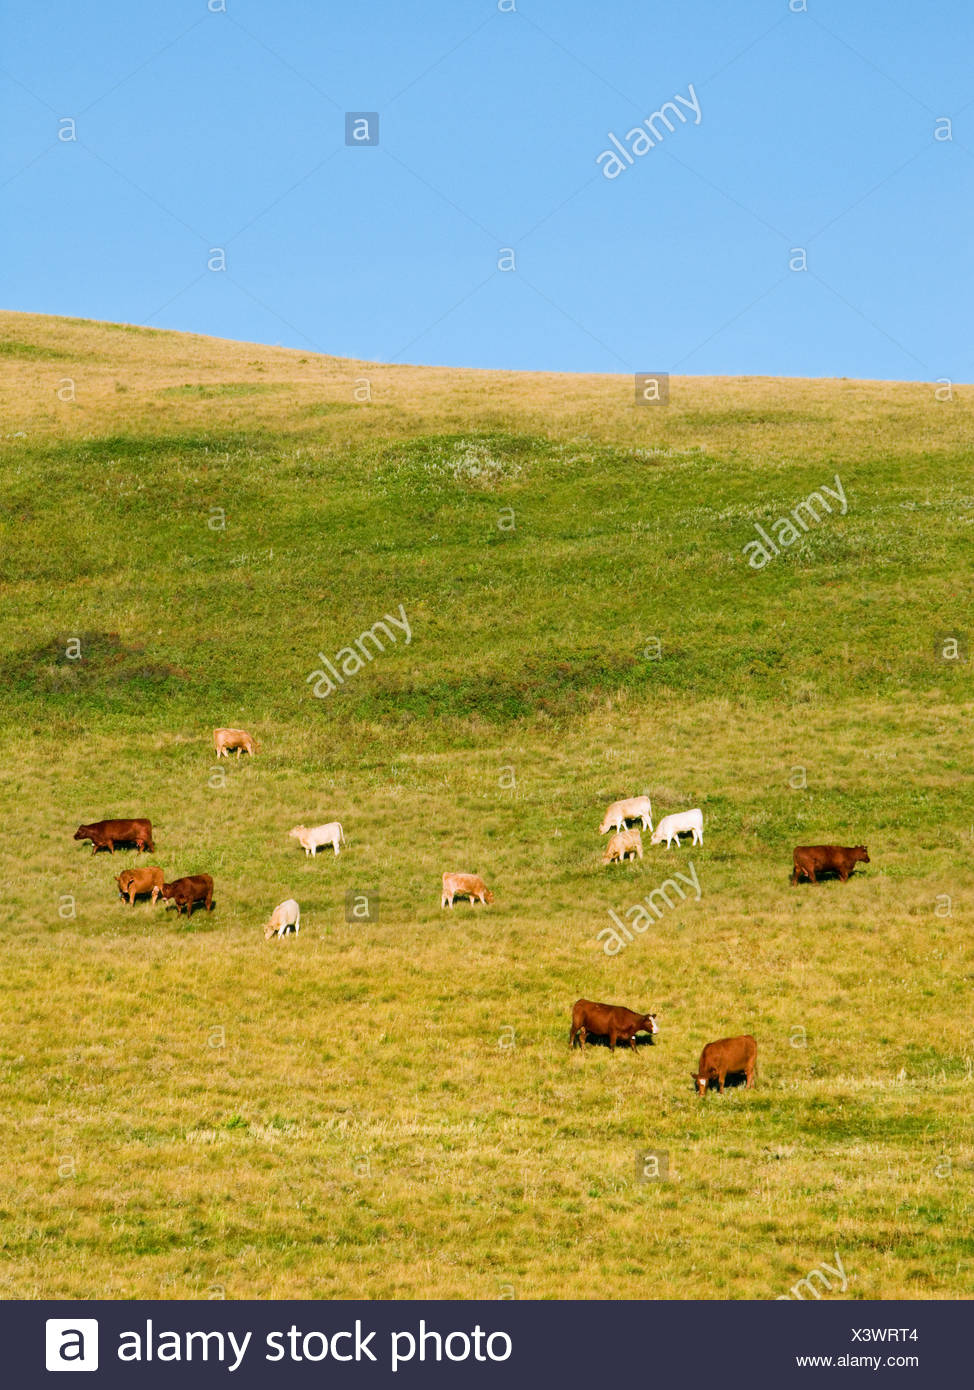 Livestock - Mixed breeds of beef cows and calves feeding on the slopes of a hillside pasture / Alberta, Canada. - Stock Image